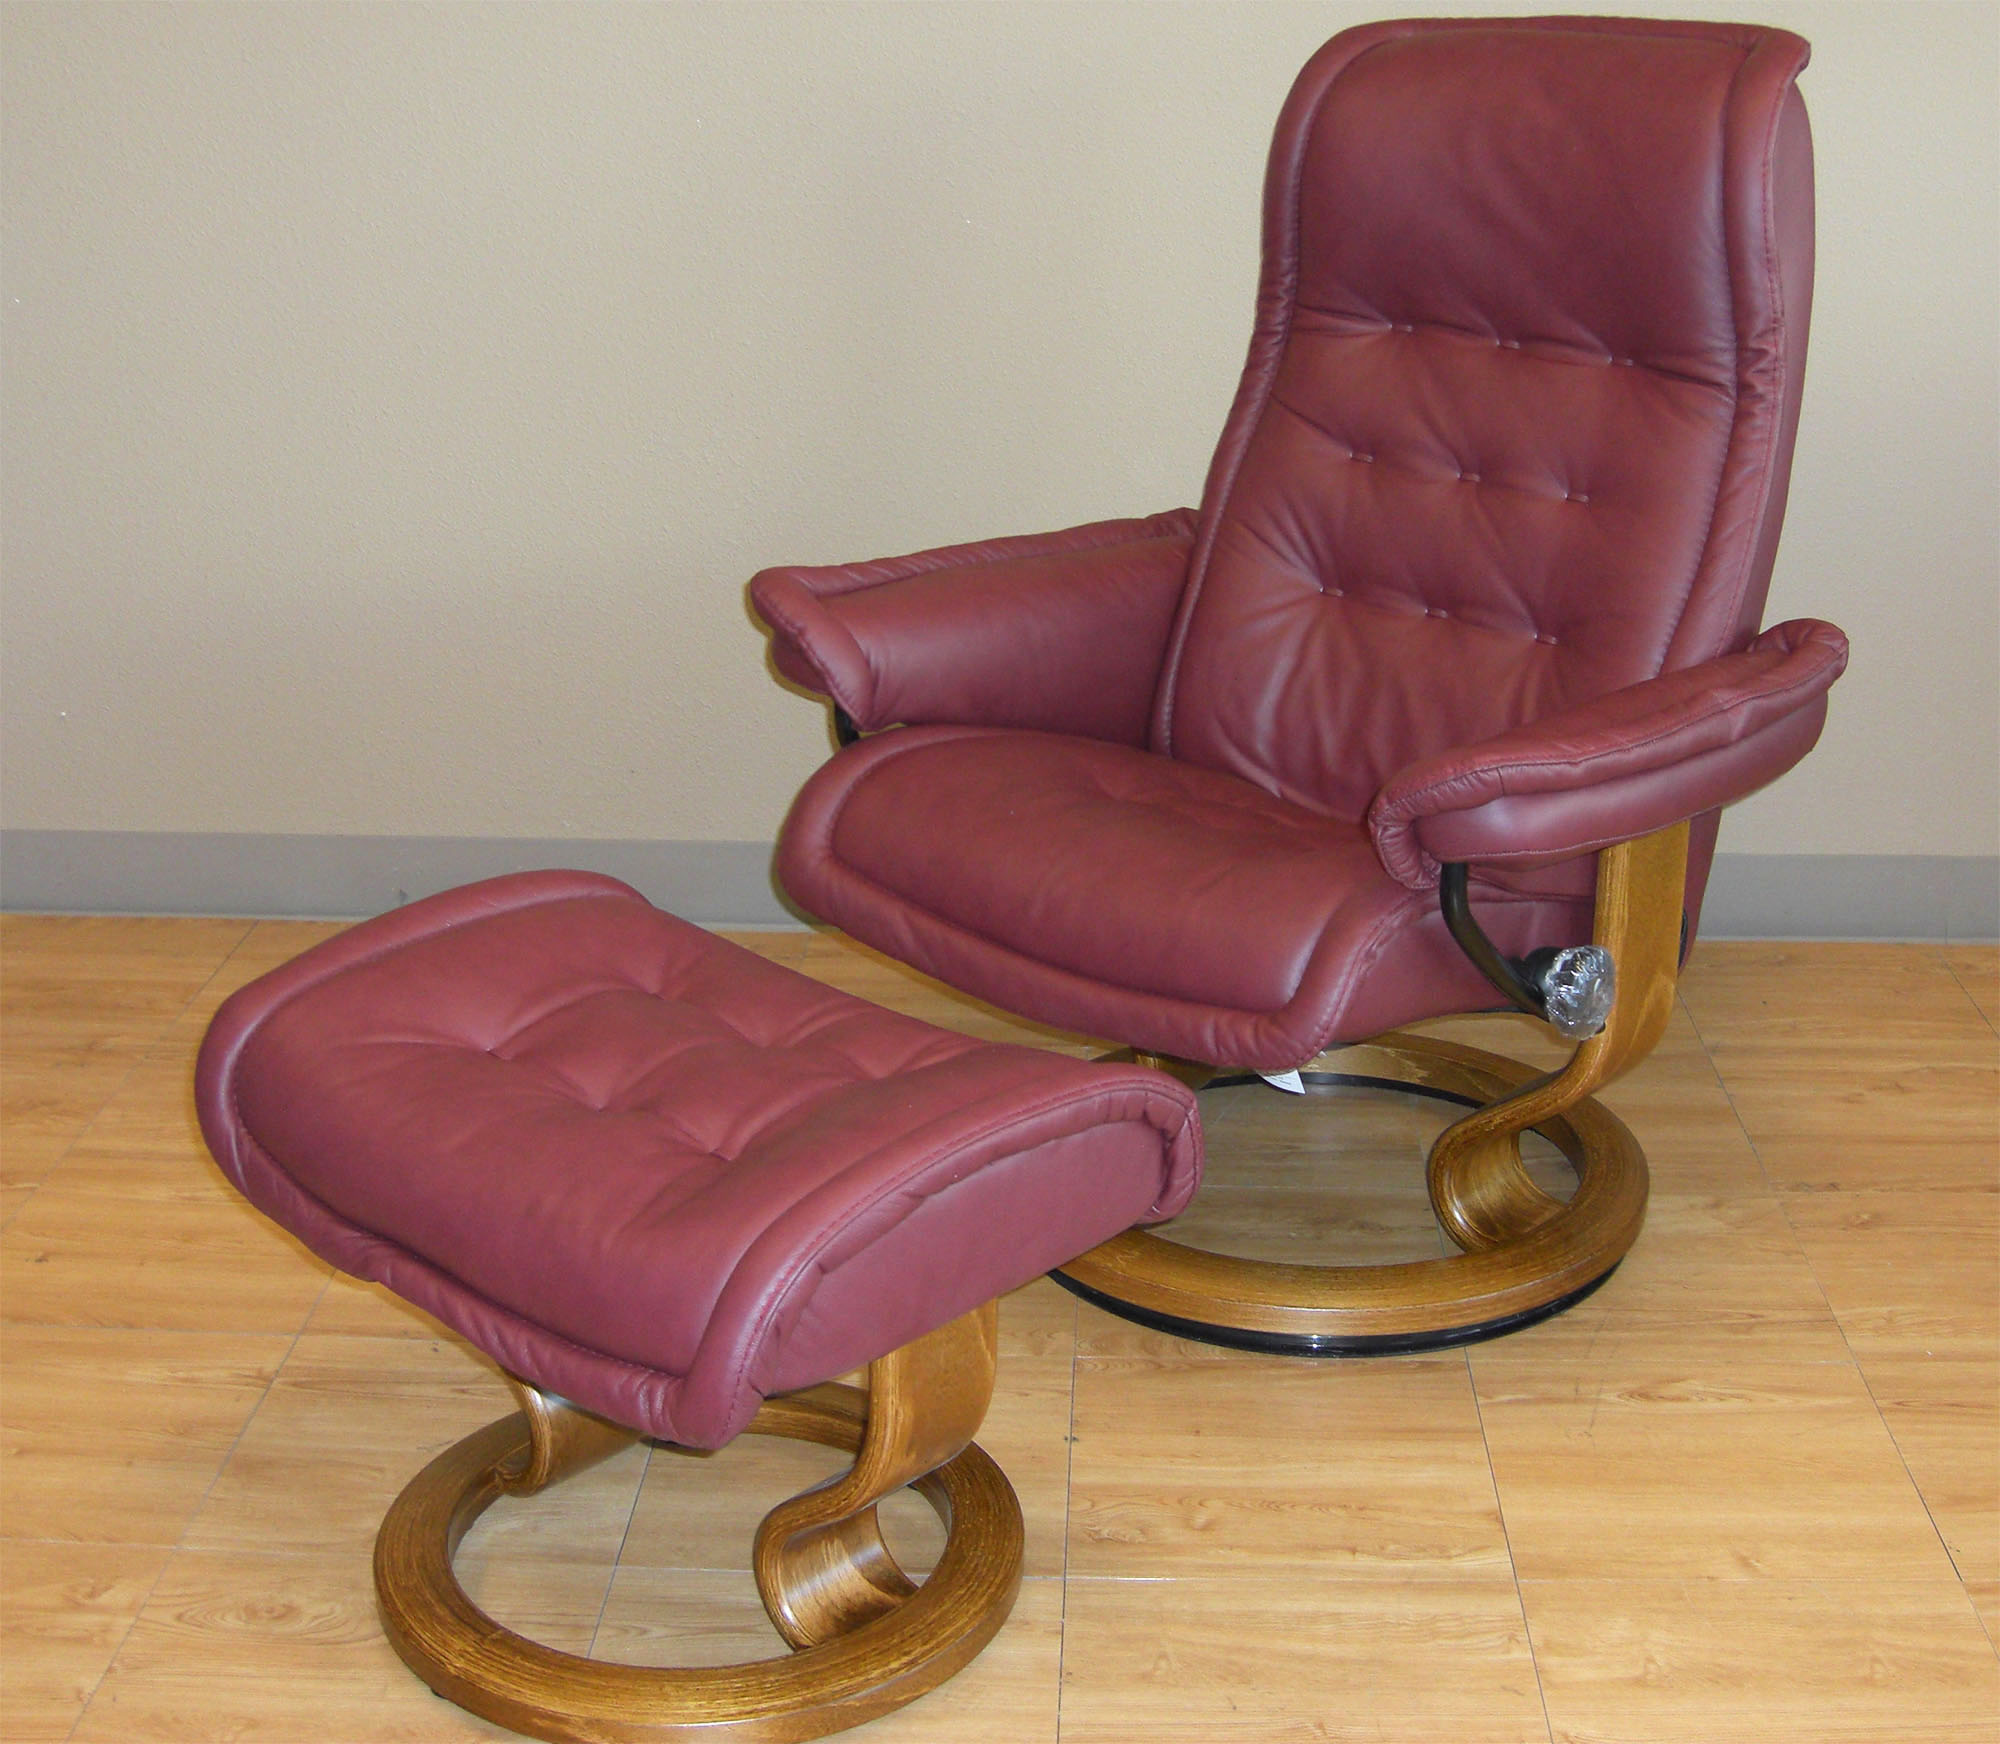 Stressless Video Stressless Royal Leather Recliner Chair And Ottoman